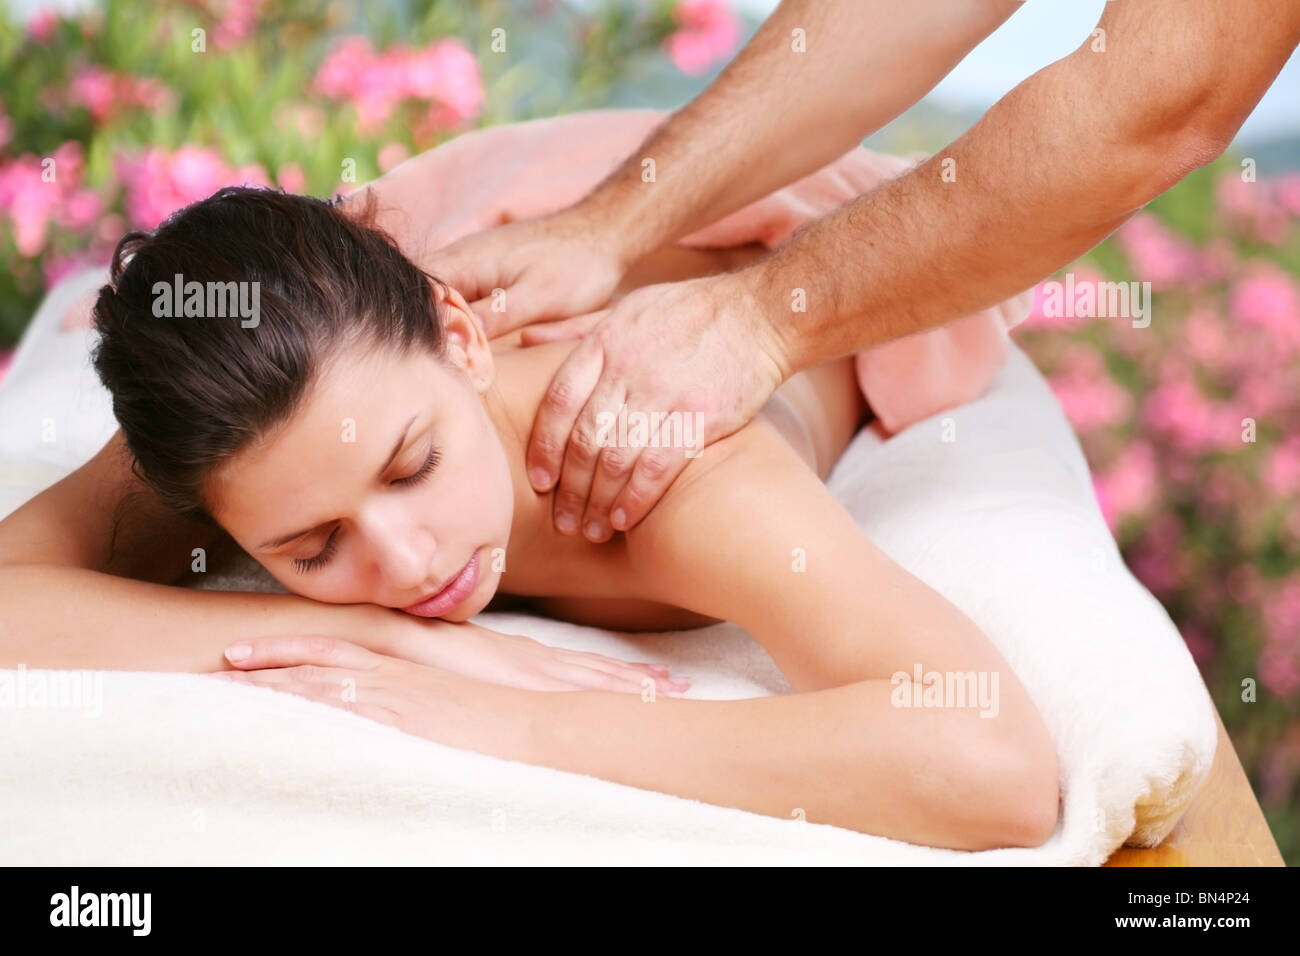 Young woman gets a massage. - Stock Image